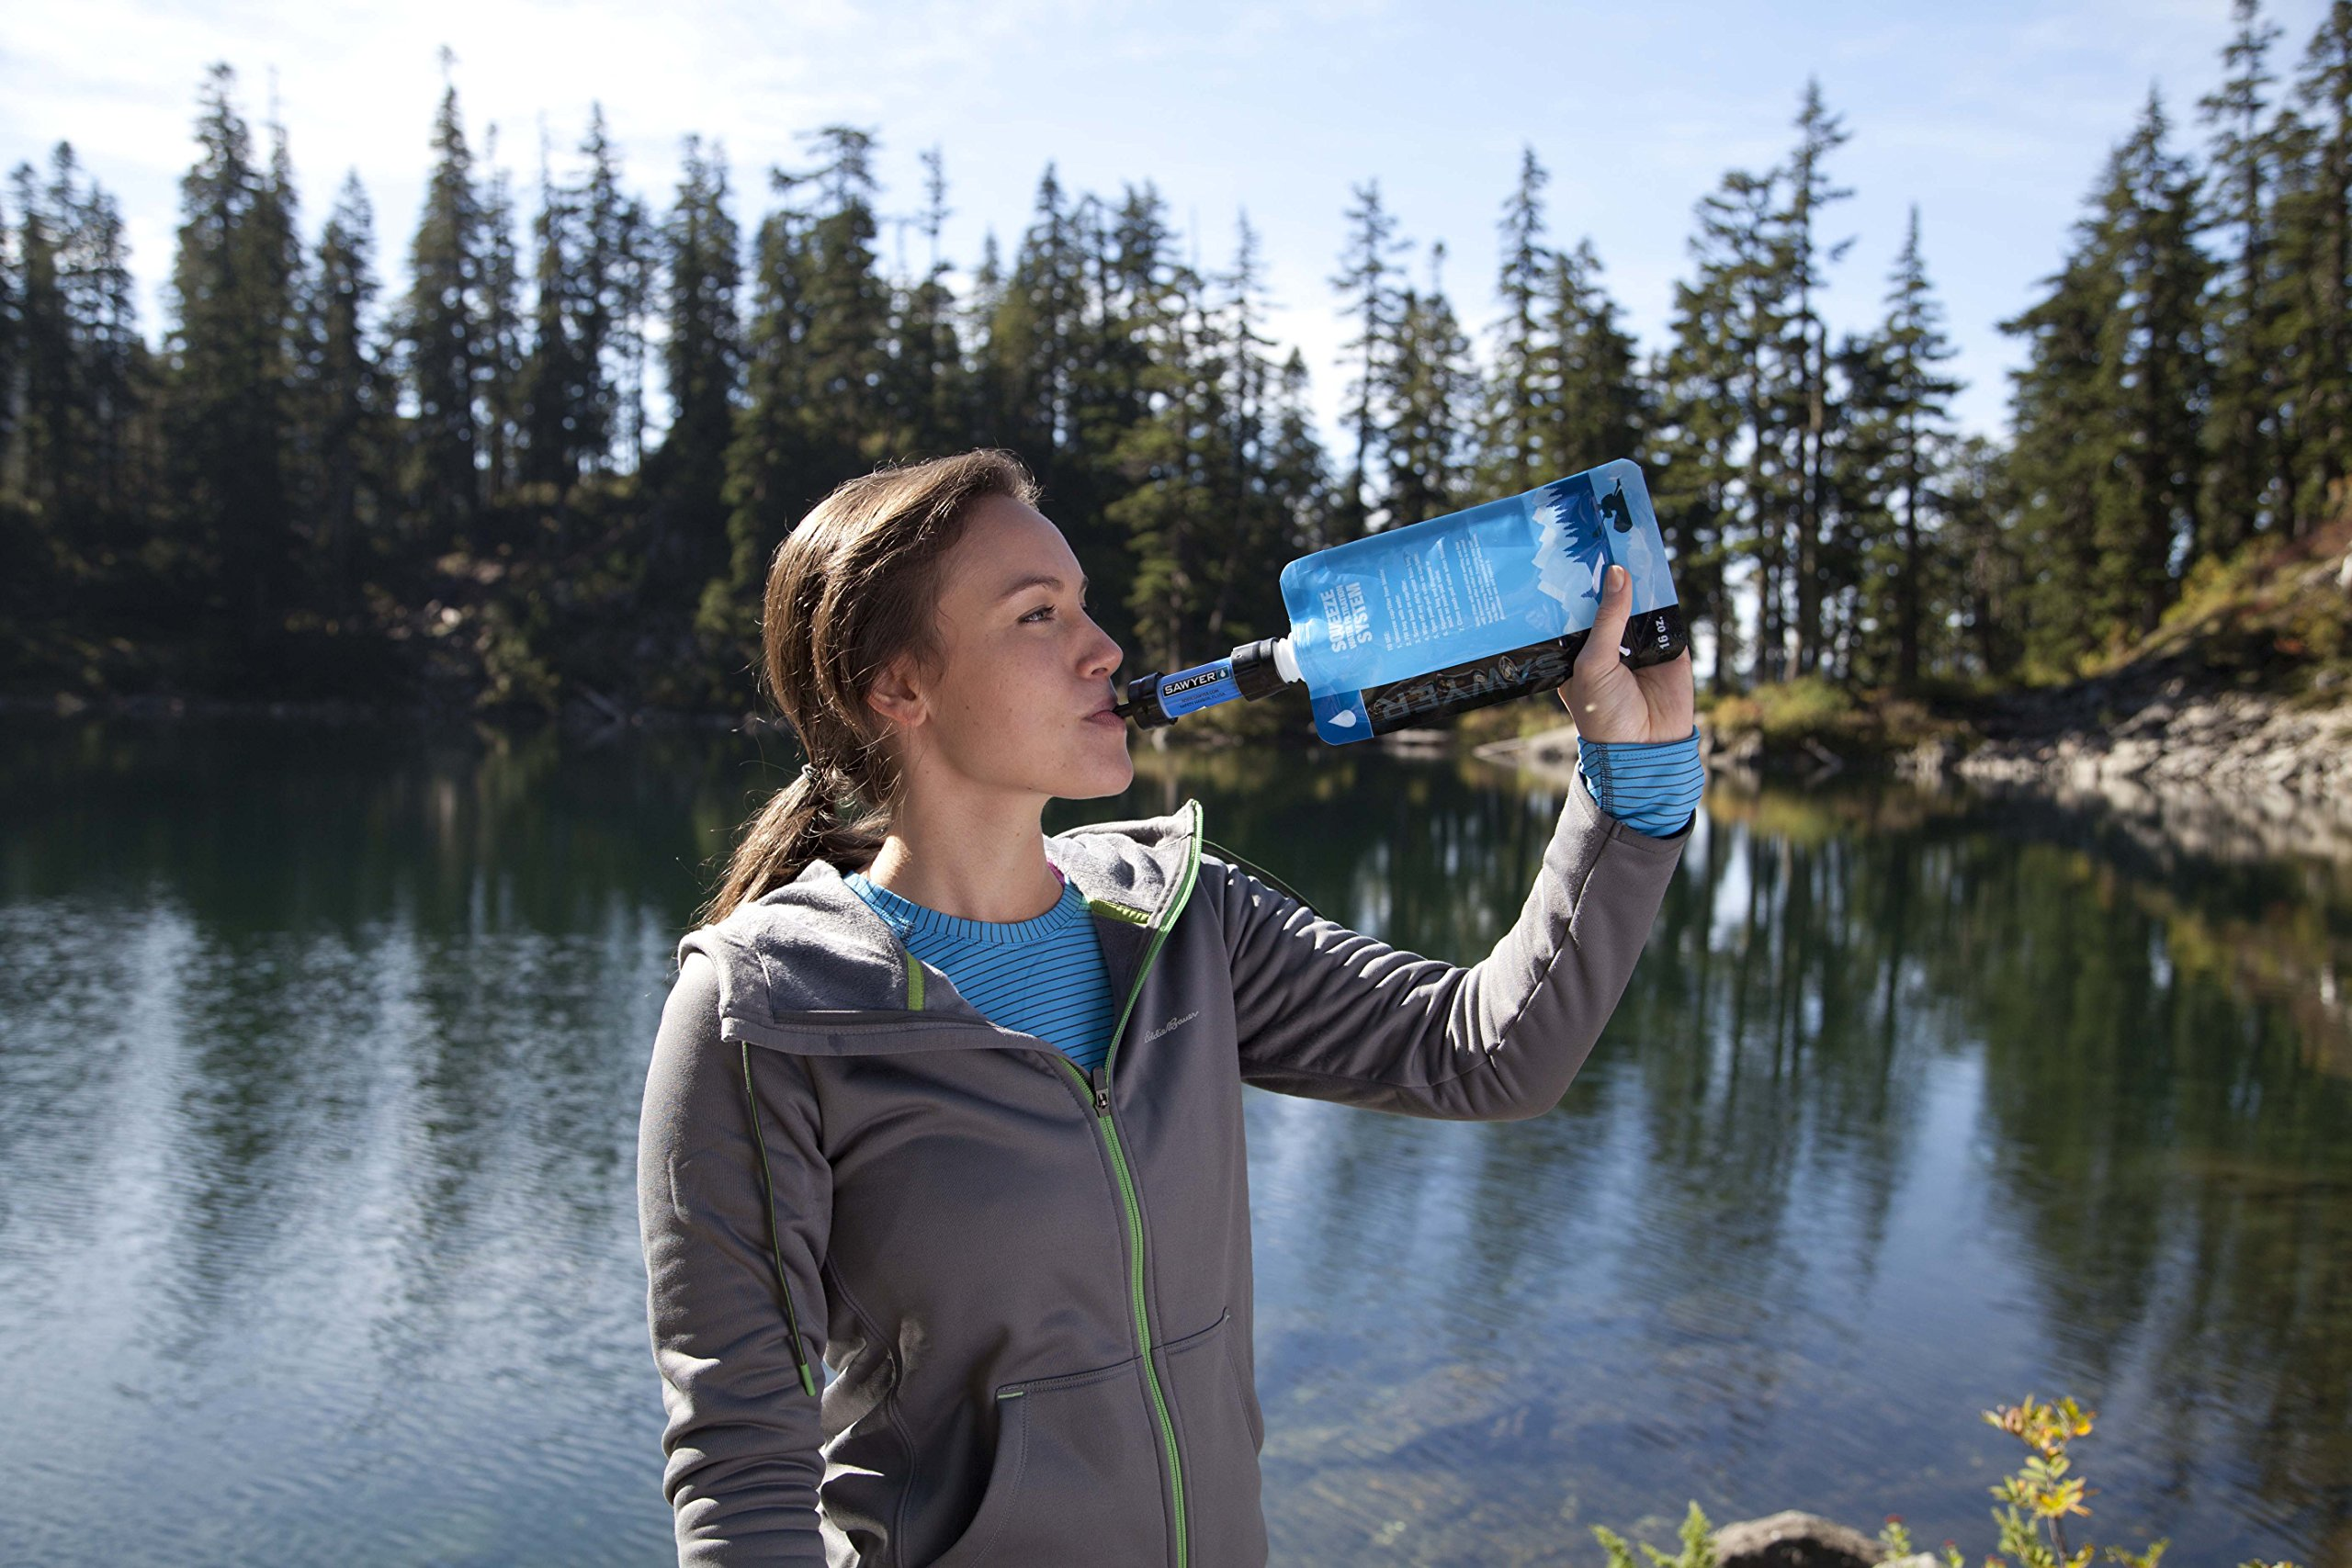 SAWYER PRODUCTS Mini Water Filtration System 3